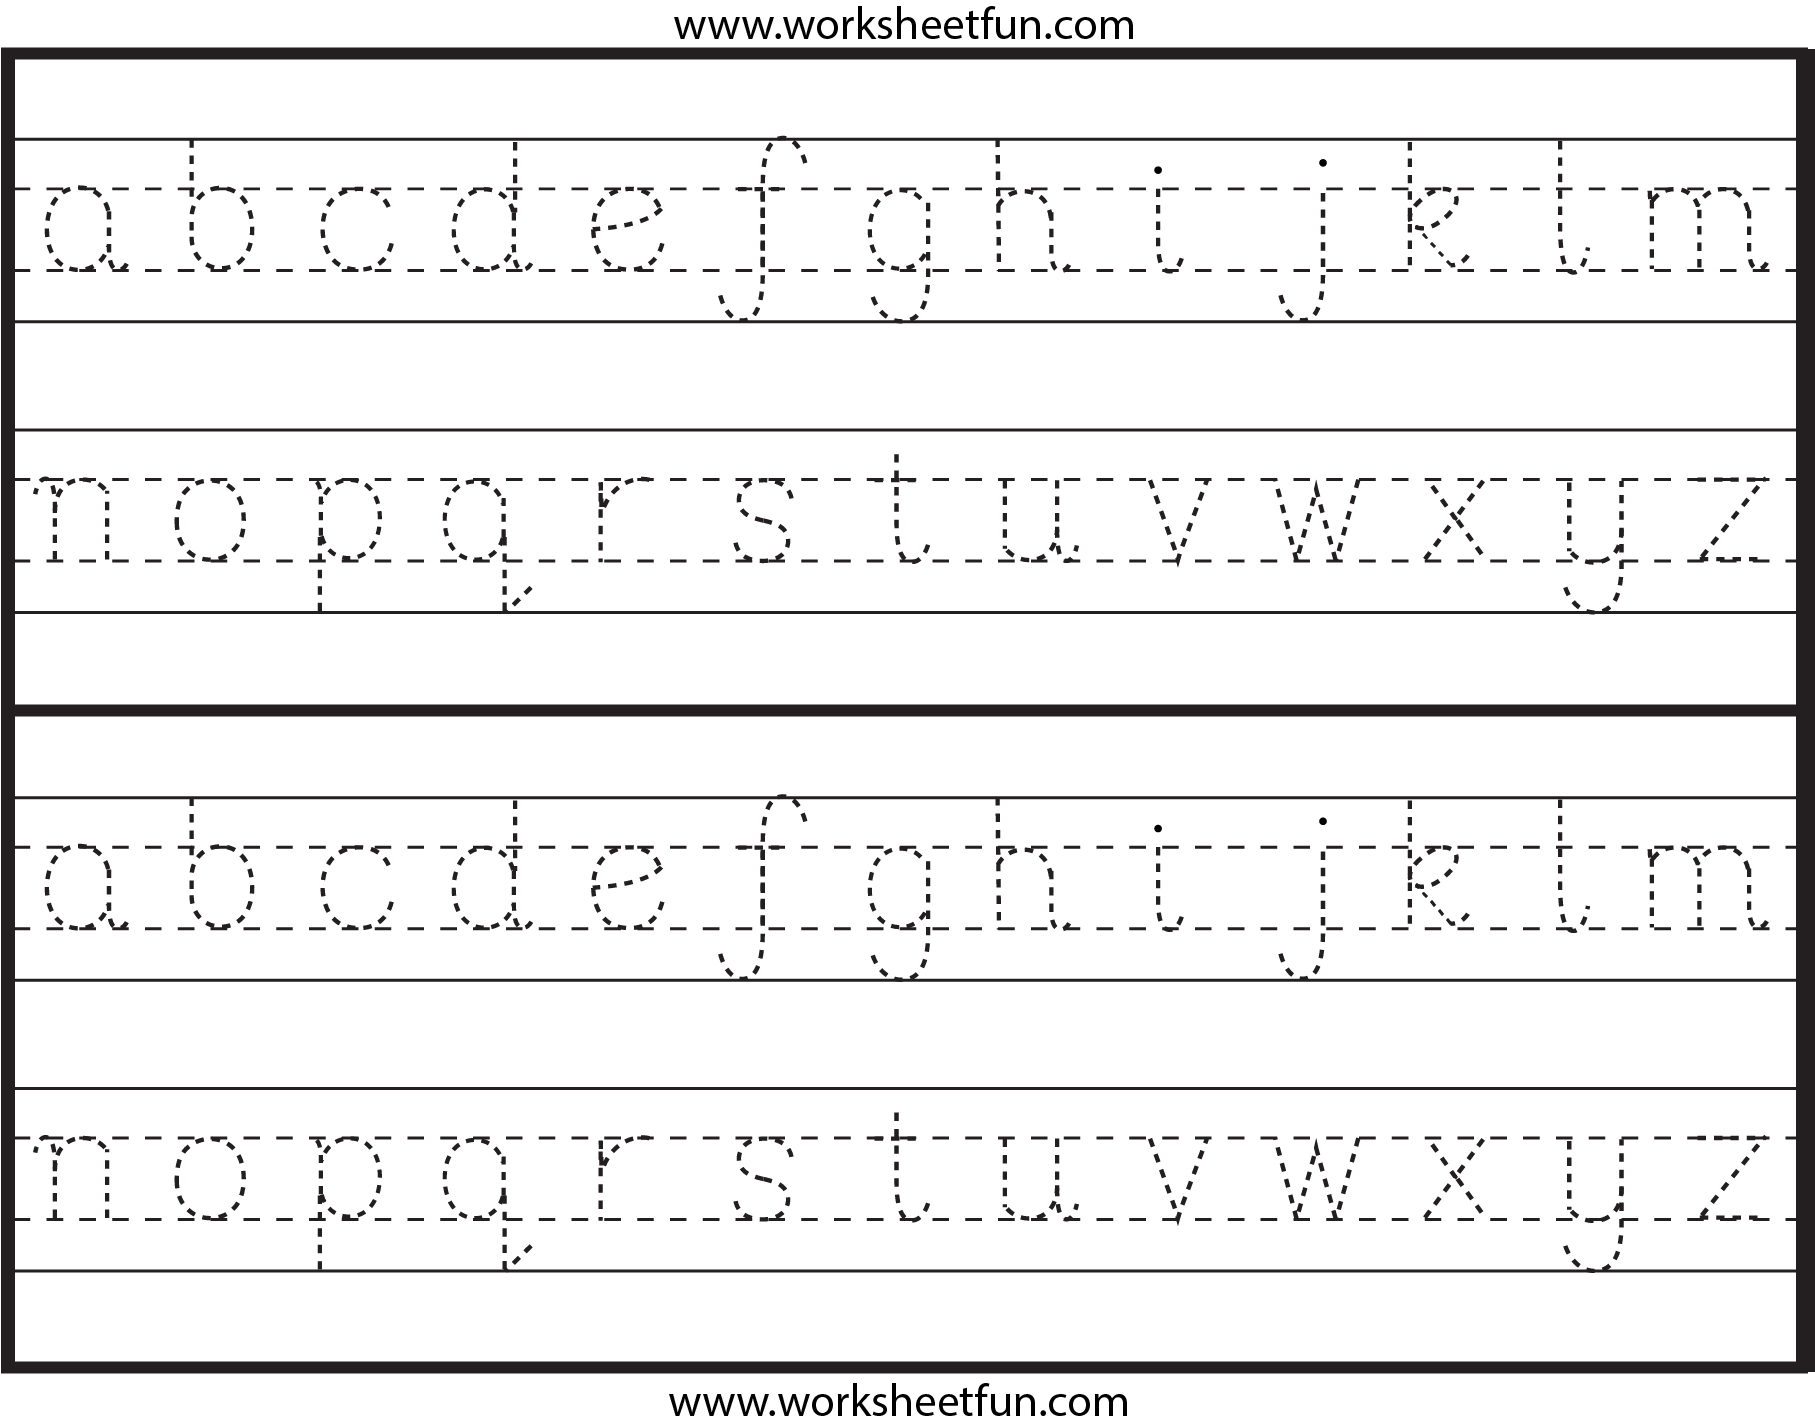 Worksheets Alphabet Tracing Worksheet here you can find some new design about tracing the alphabet english worksheet for kindergarten that print free available in various template to including lett